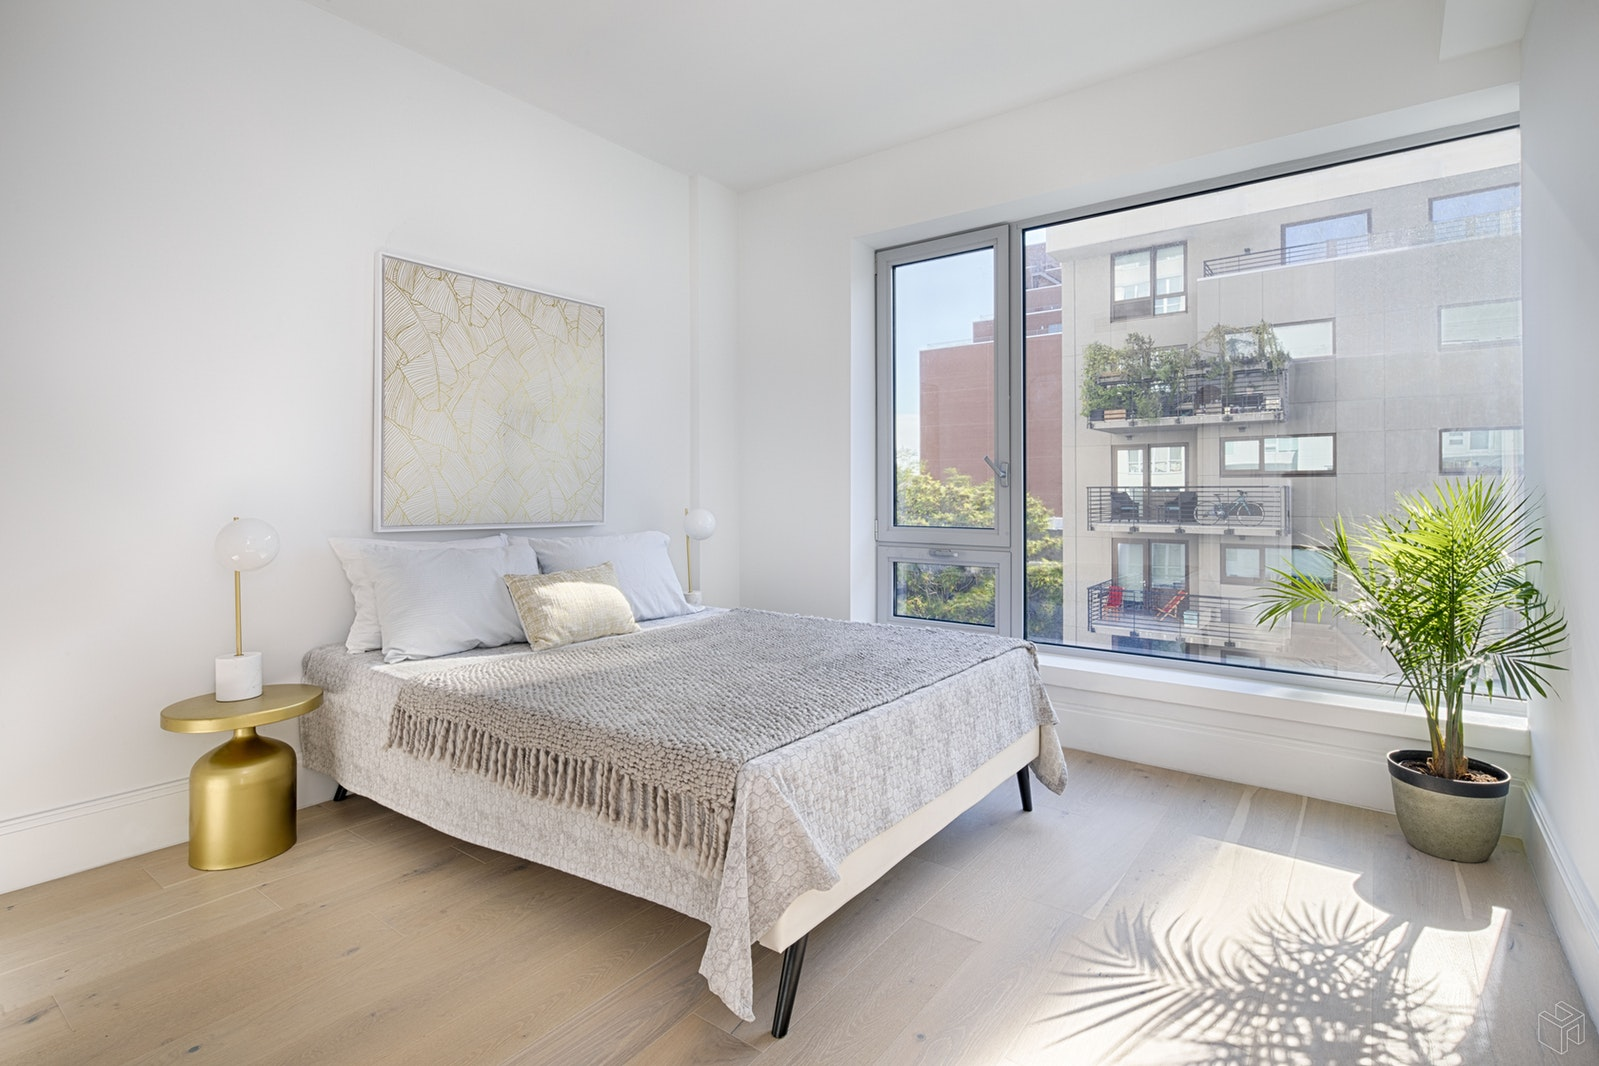 610 Warren Street 4b, Boerum Hill, Brooklyn, NY, 11217, $1,655,000, Sold Property, Halstead Real Estate, Photo 7